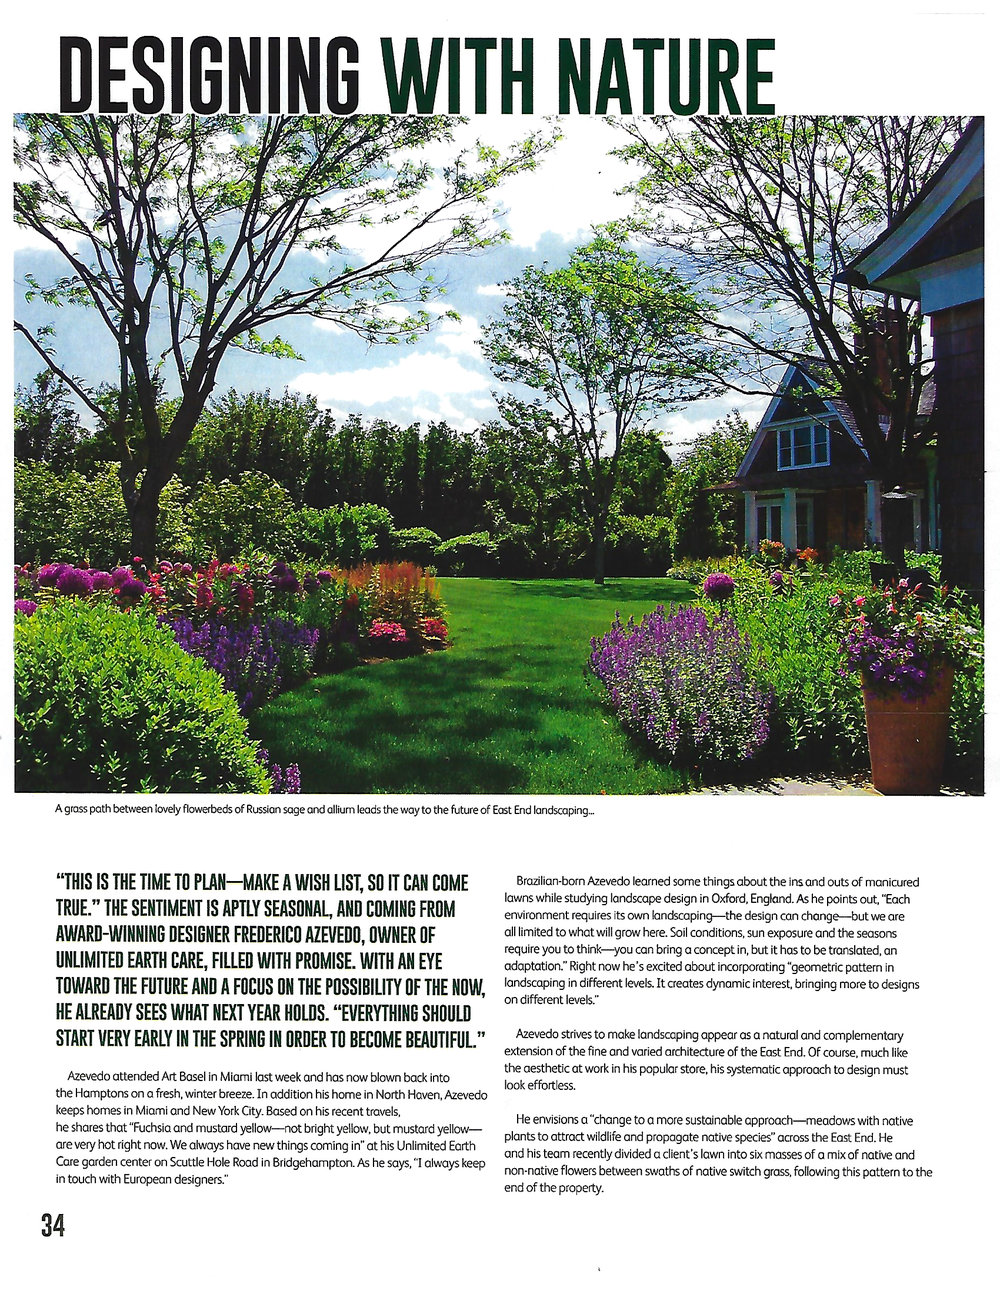 Behind the Hedges - Designing with Nature_Dec 2017.jpg